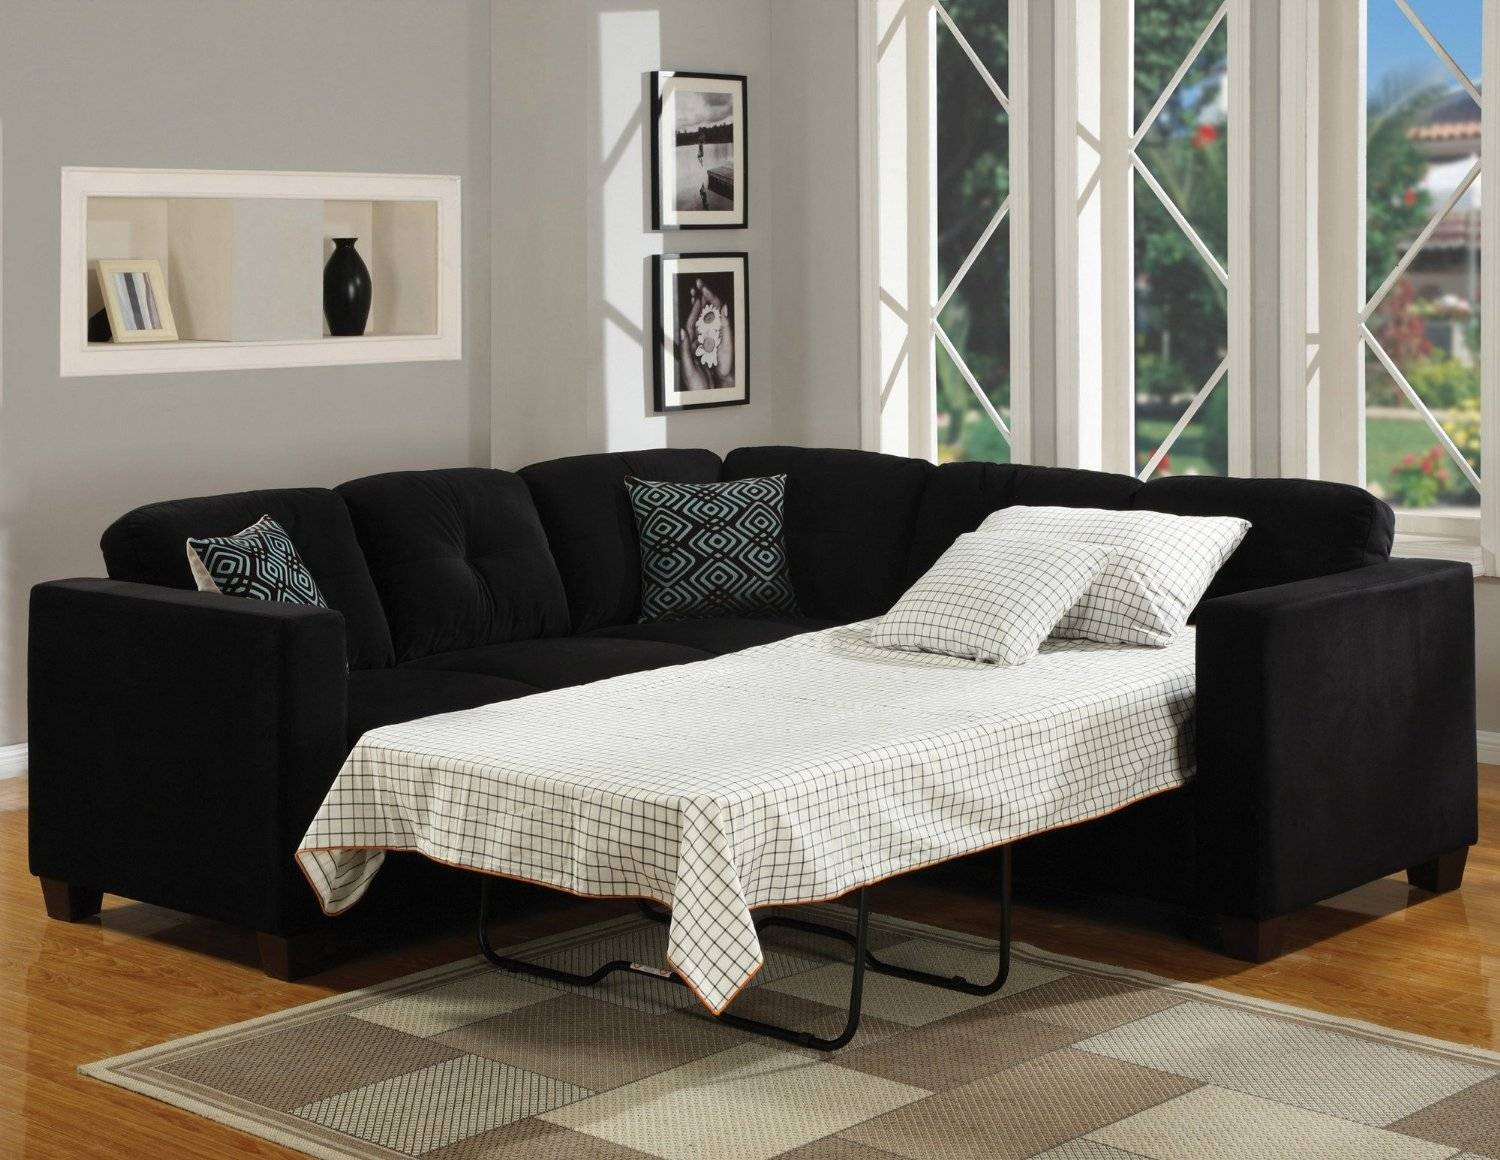 Best Cheap Sofa Bed Sectionals 21 On Diana Dark Brown Leather with regard to Diana Dark Brown Leather Sectional Sofa Set (Image 10 of 30)